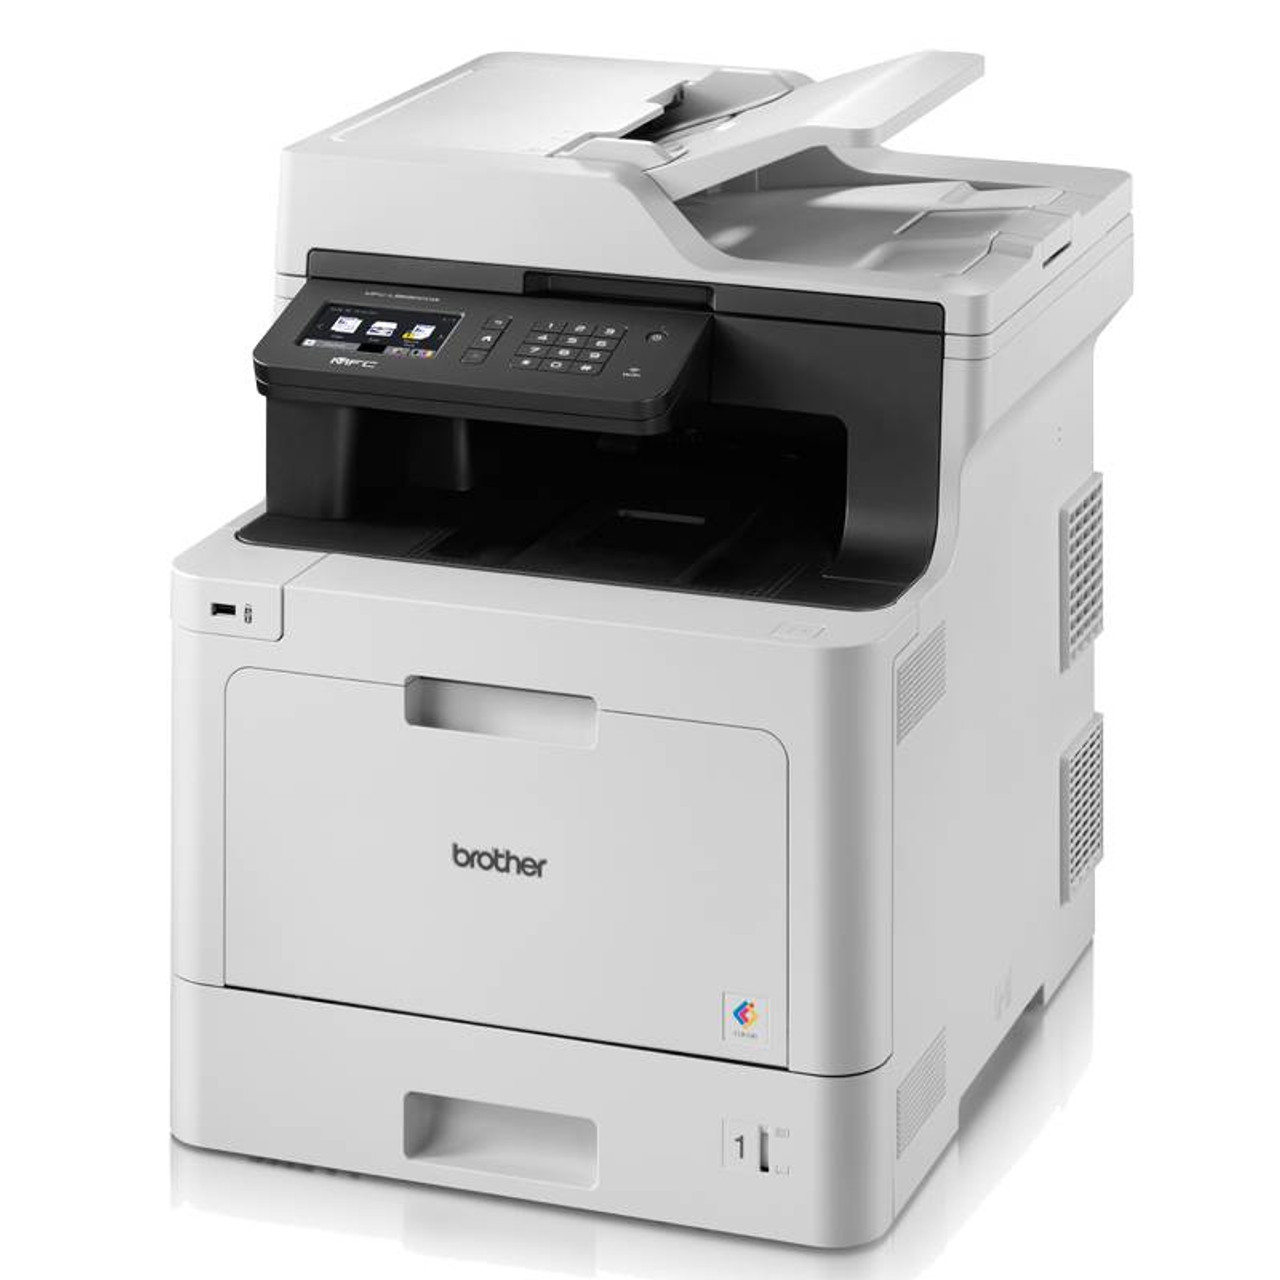 Product image for Brother MFC-L8690CDW Multi Function Colour Laser Printer | CX Computer Superstore